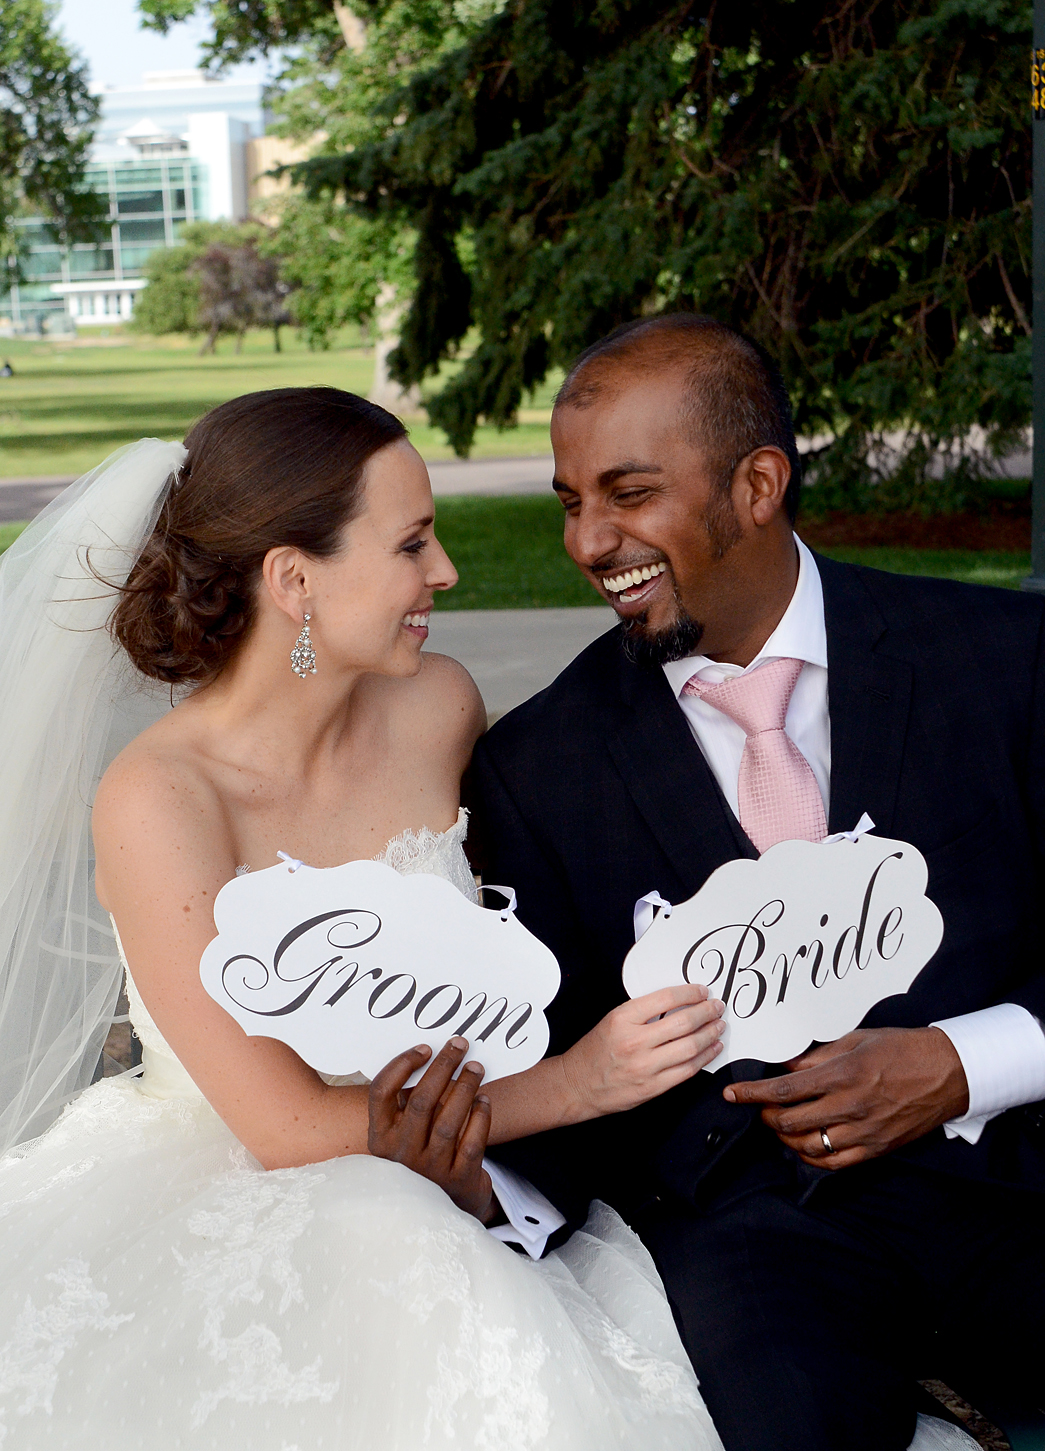 Cute Bride and Groom signs at Denver Museum of Nature and Science Wedding